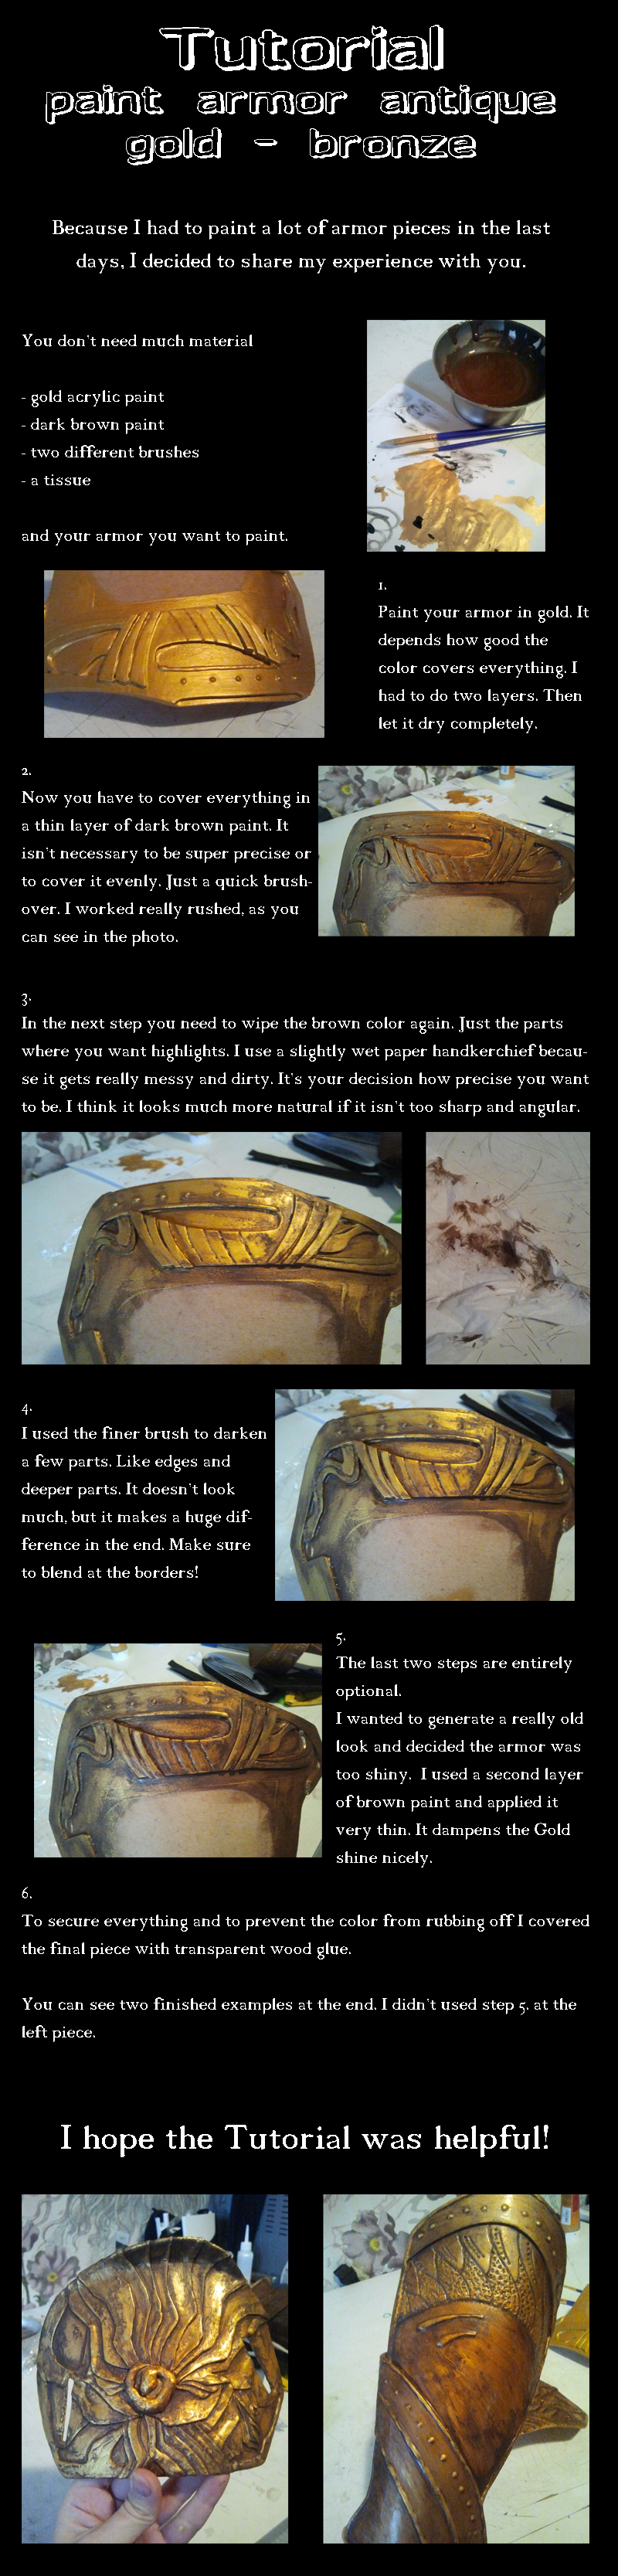 Tutorial paint armor antique gold by Ankh-Feels